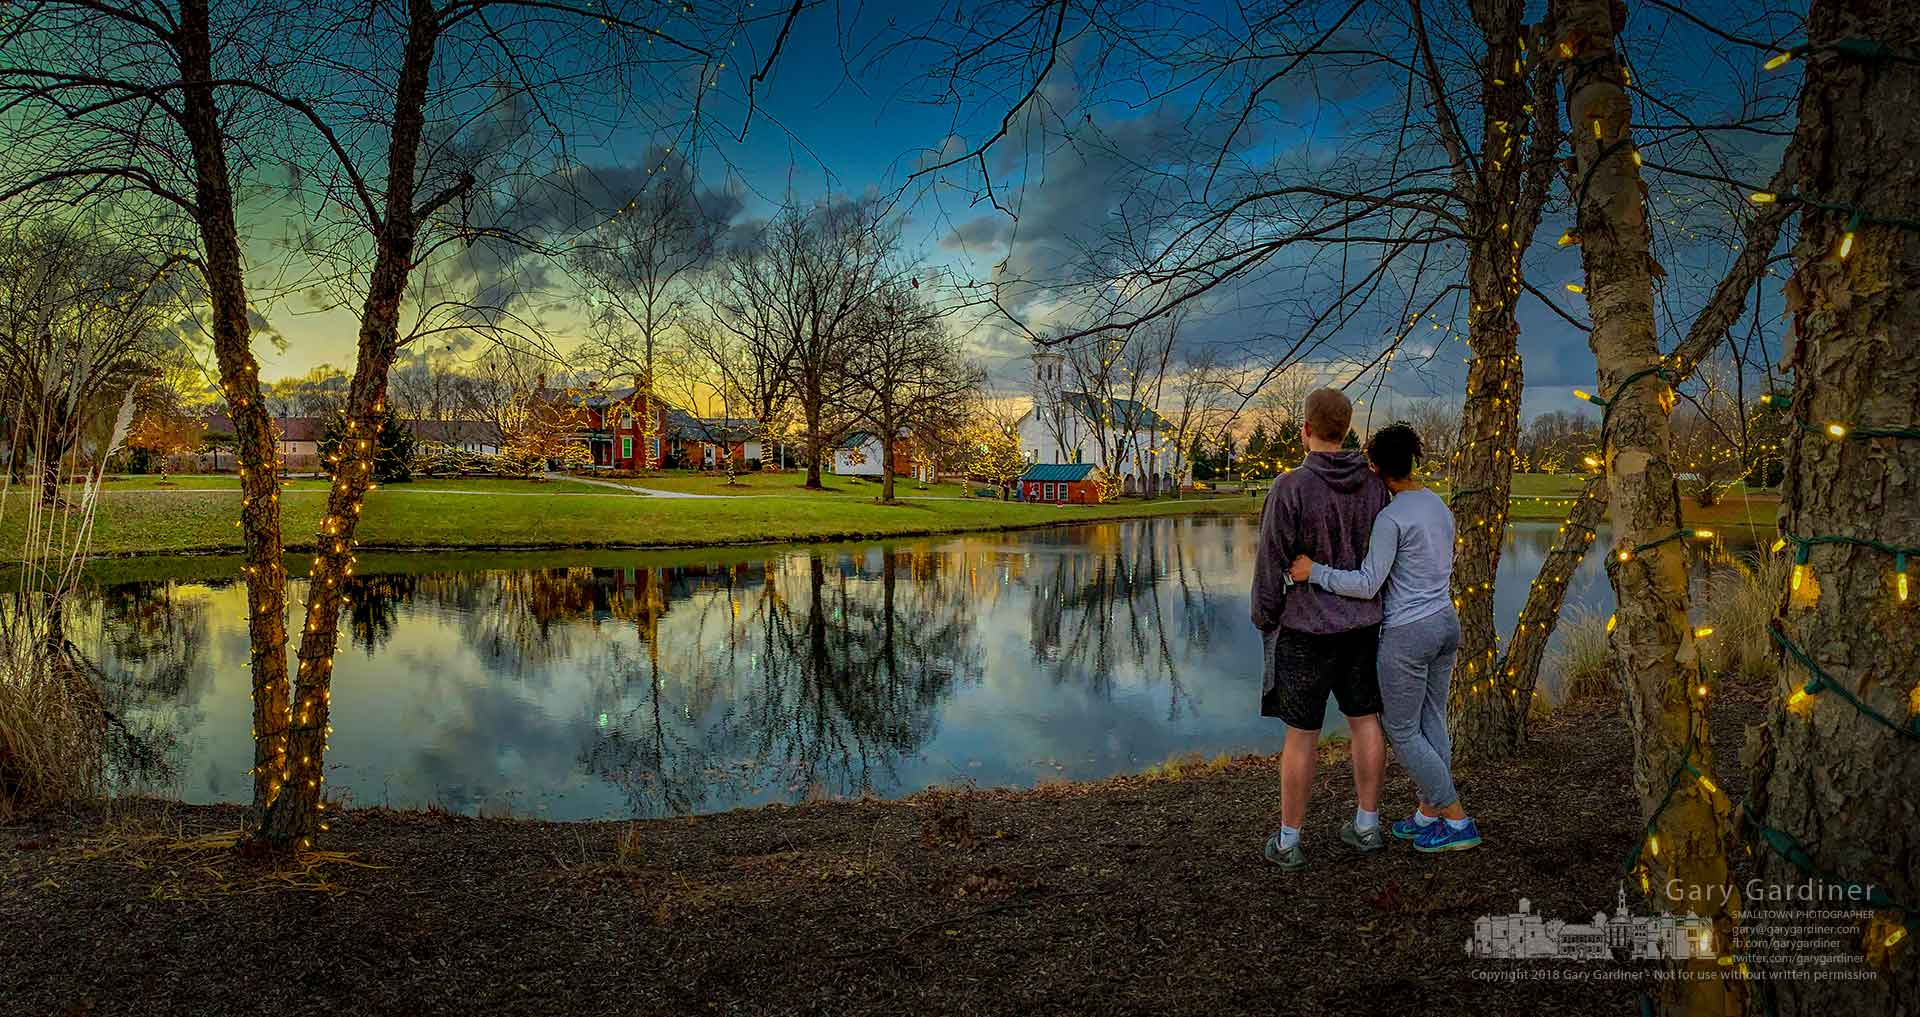 A couple pauses on their evening walk to look at the sunset and the holiday lights decorating Everal Barn and Heritage Park in Westerville. My Final Photo for Dec. 2, 2018.